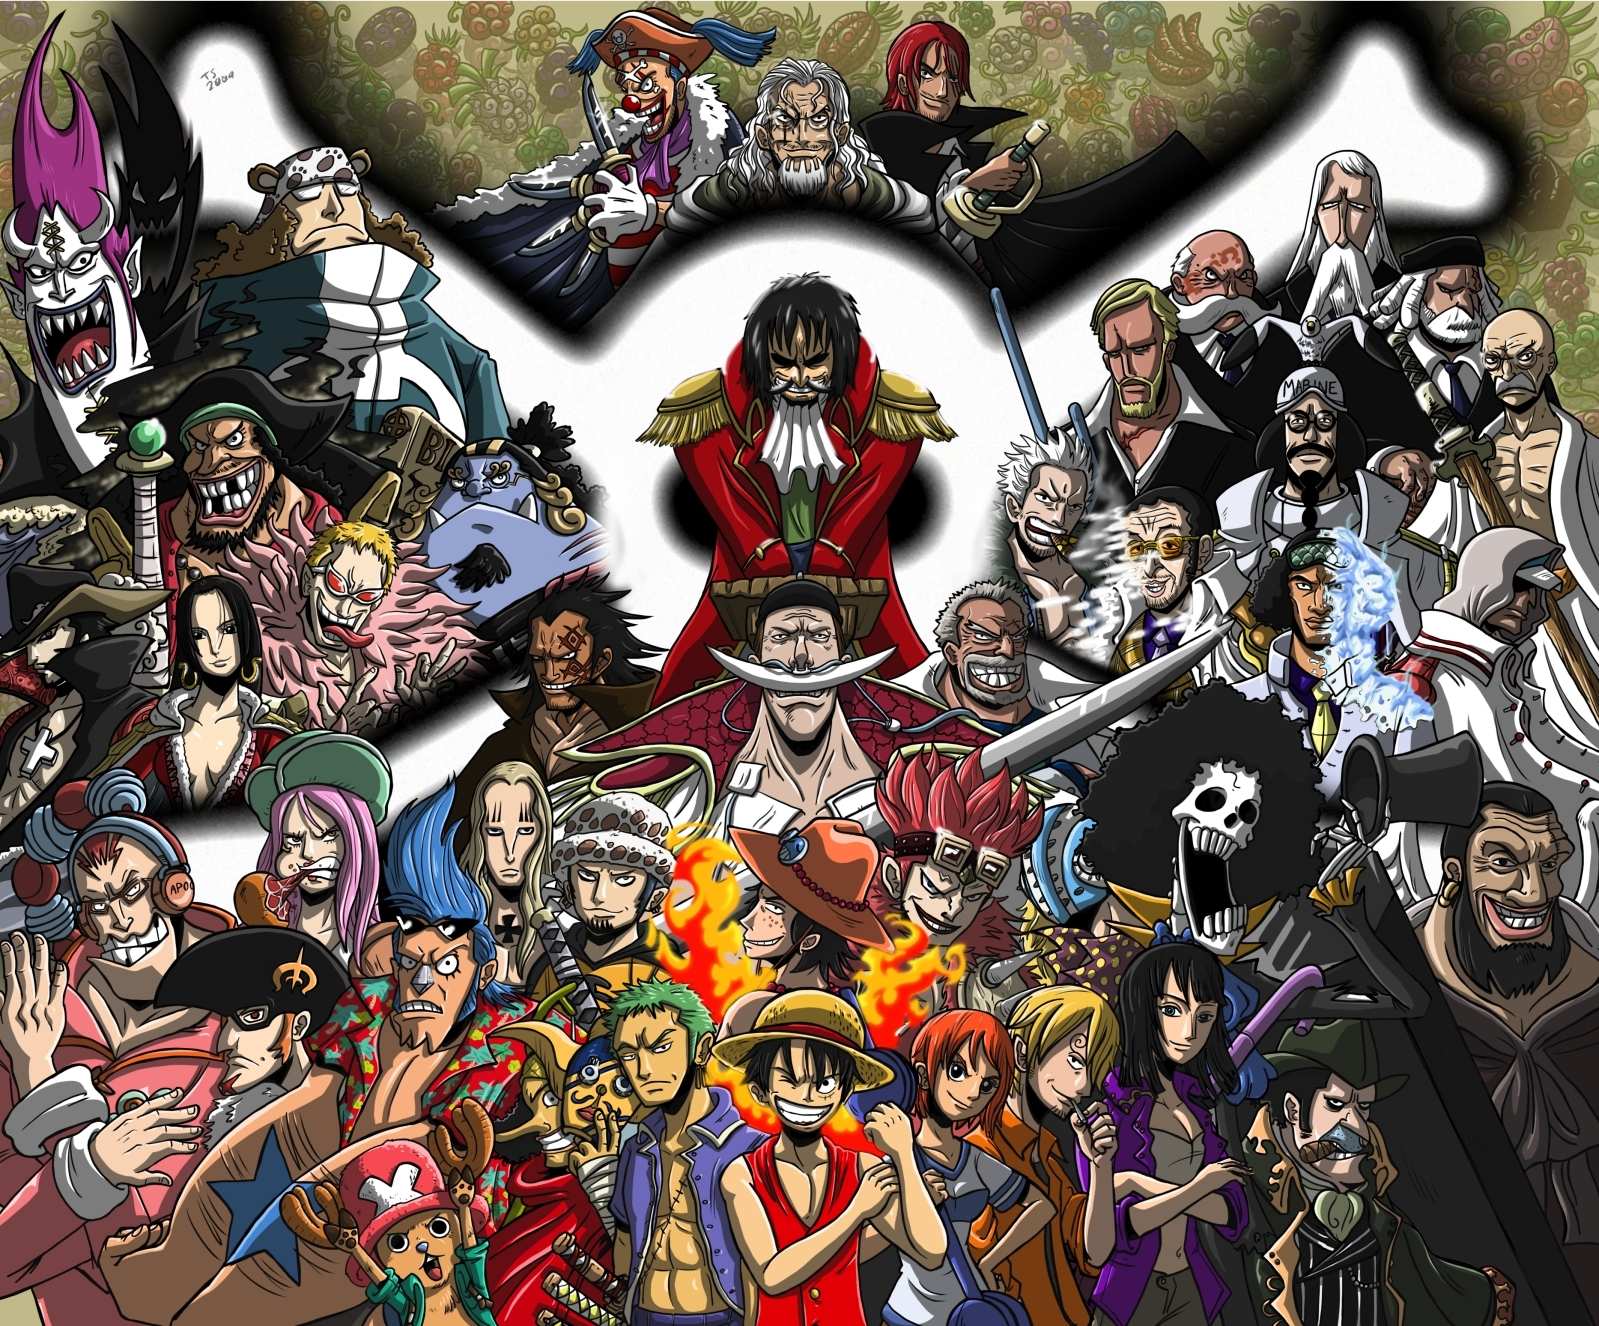 http://2.bp.blogspot.com/-vE92gqVNoW0/T-5Nqj2x3YI/AAAAAAAAHBI/JGYgp1wEduE/s1600/One-Piece-All-Characters-one-piece-10112324-1599-1326.jpg